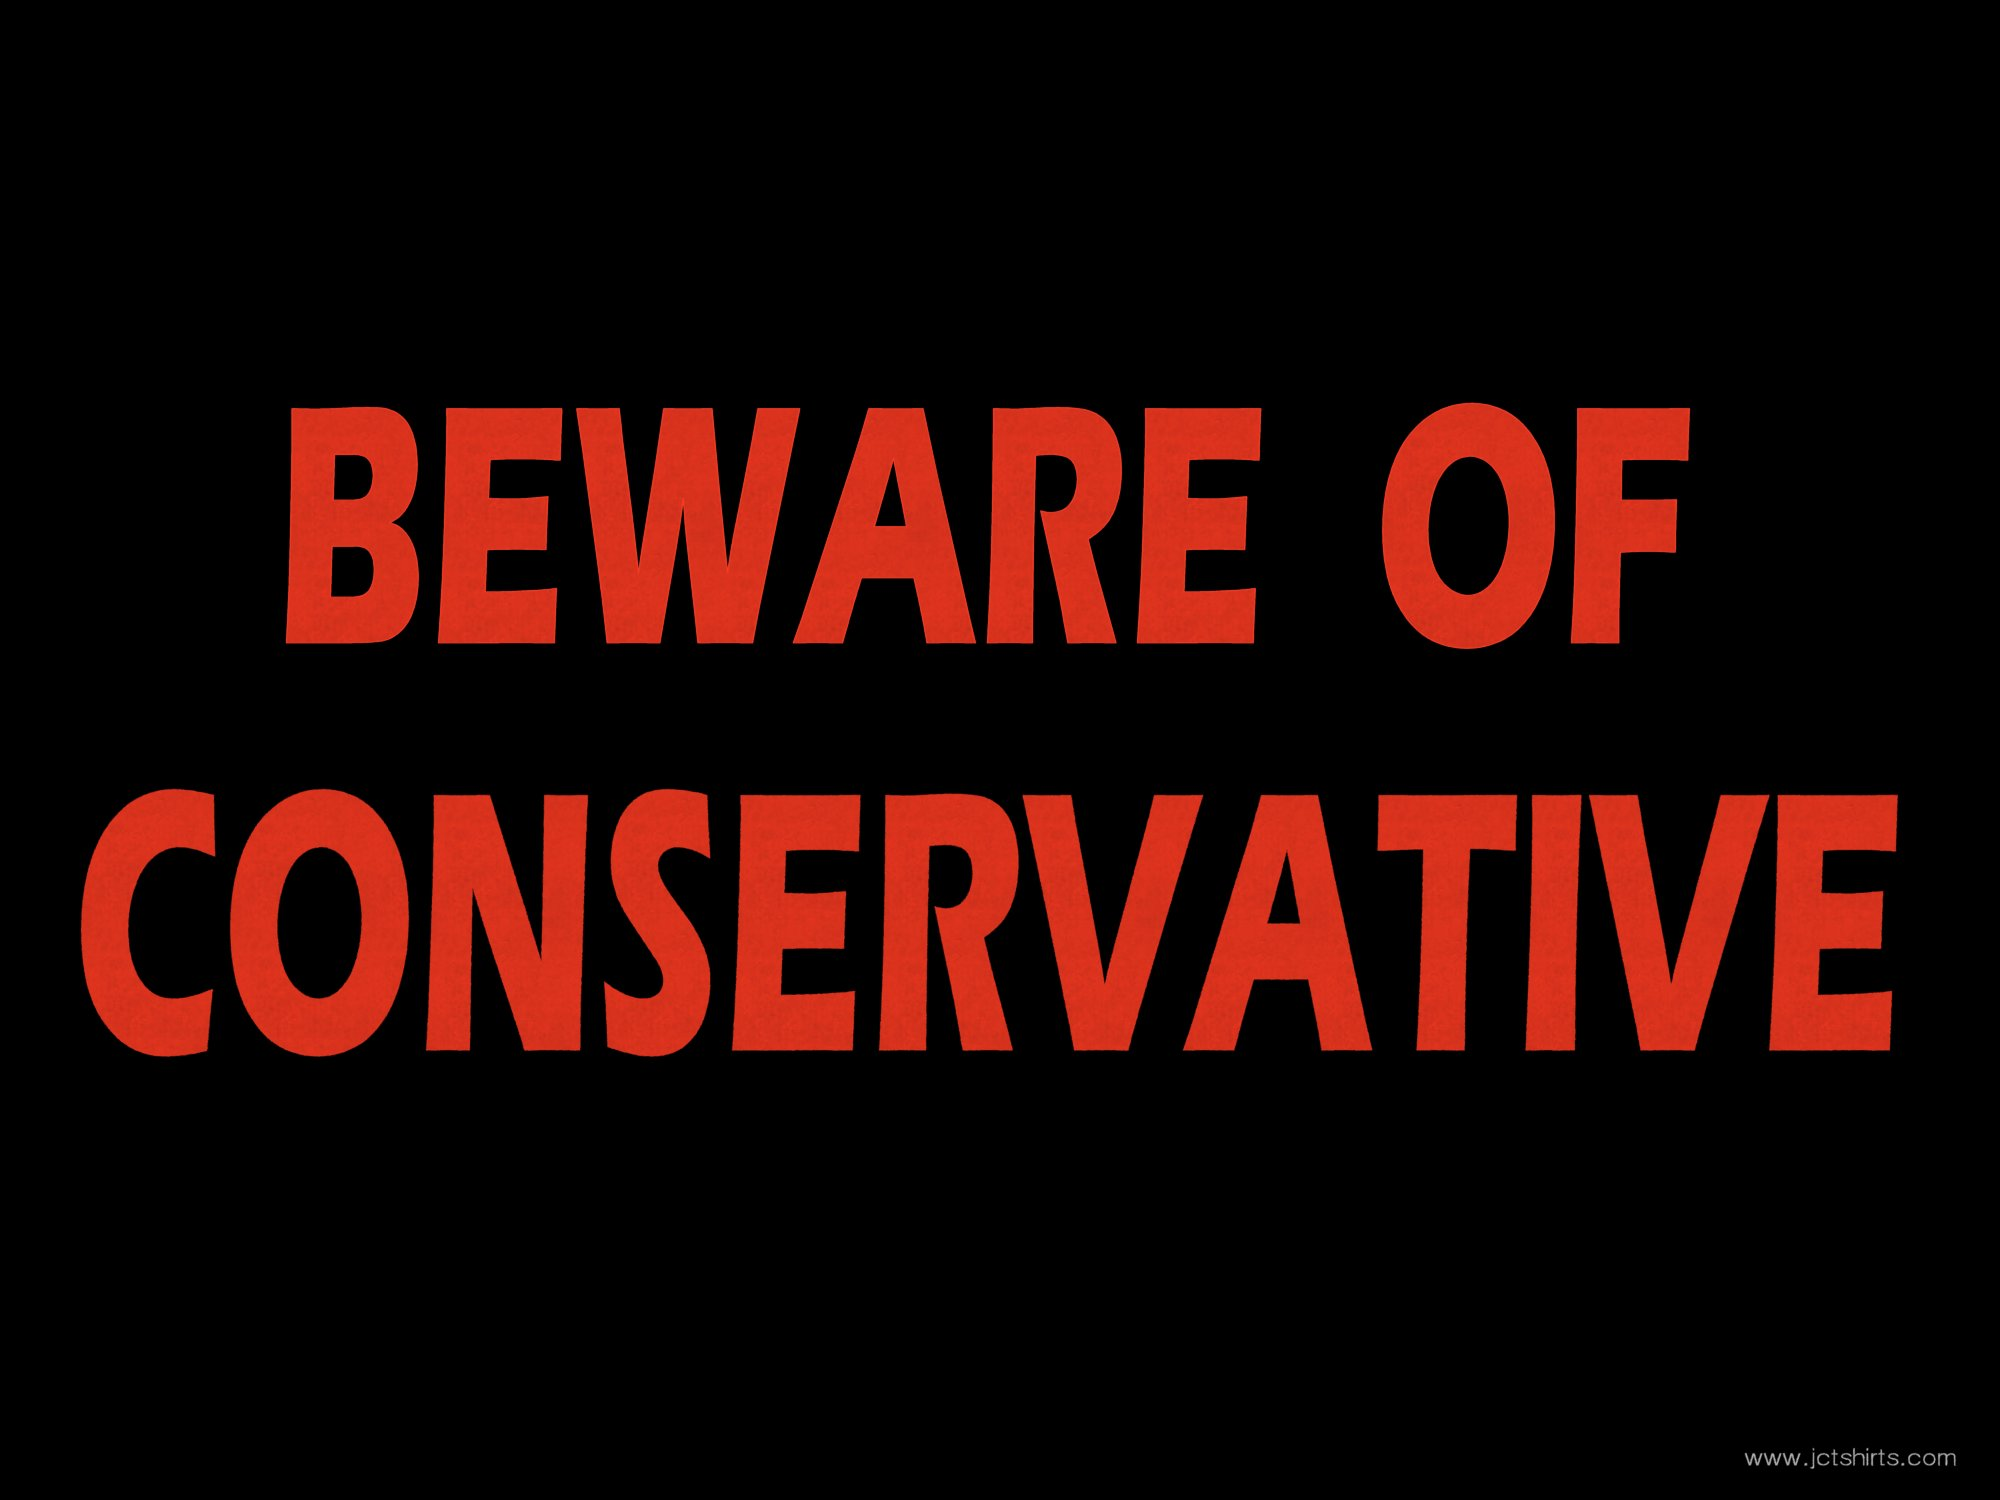 Beware of Conservative